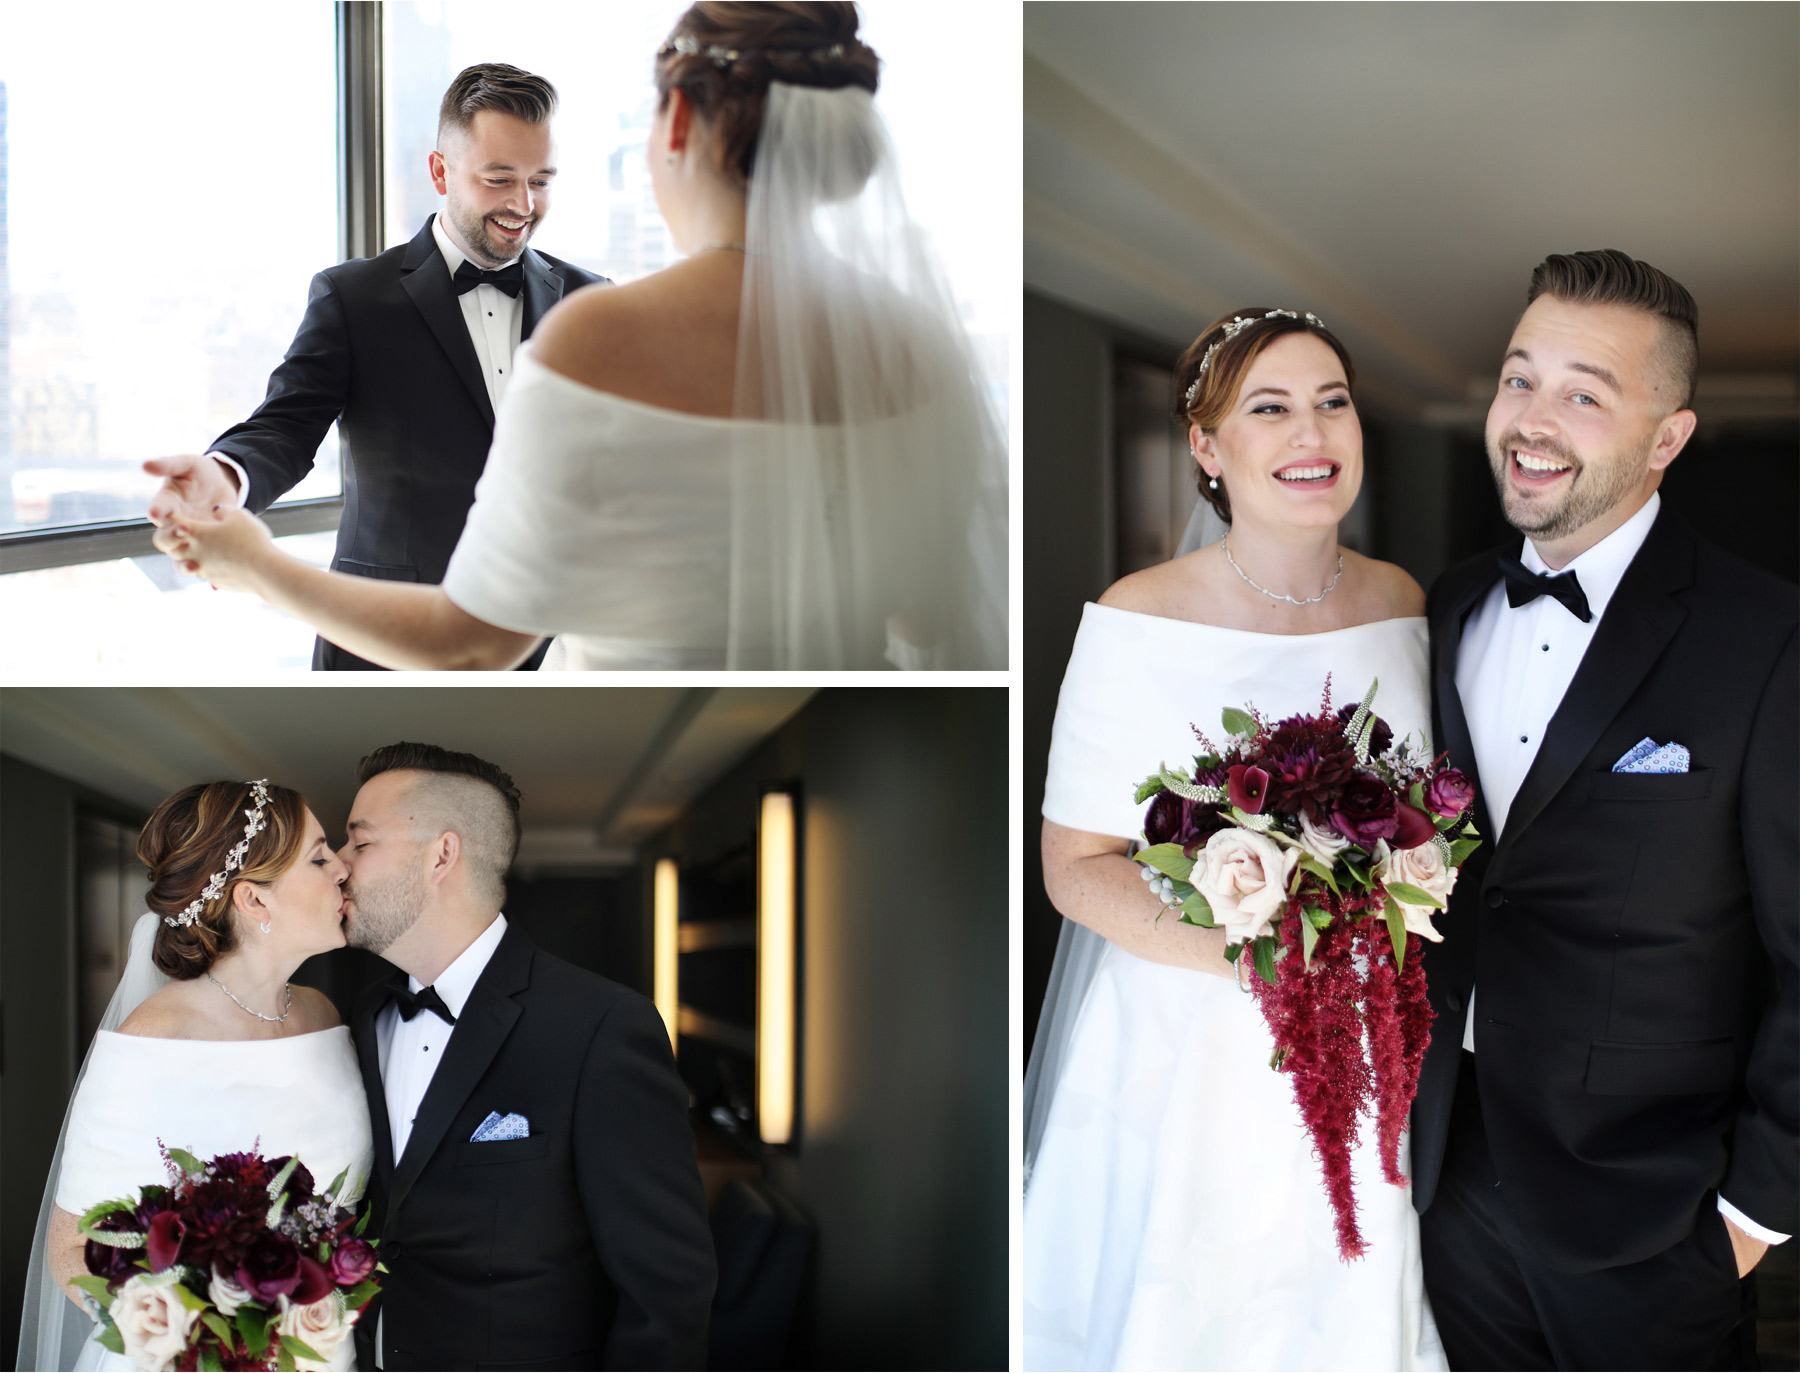 06-Minneapolis-Minnesota-Wedding-Photography-by-Vick-Photography-Loews-Hotel-First-Look-Caitlin-and-Alec.jpg